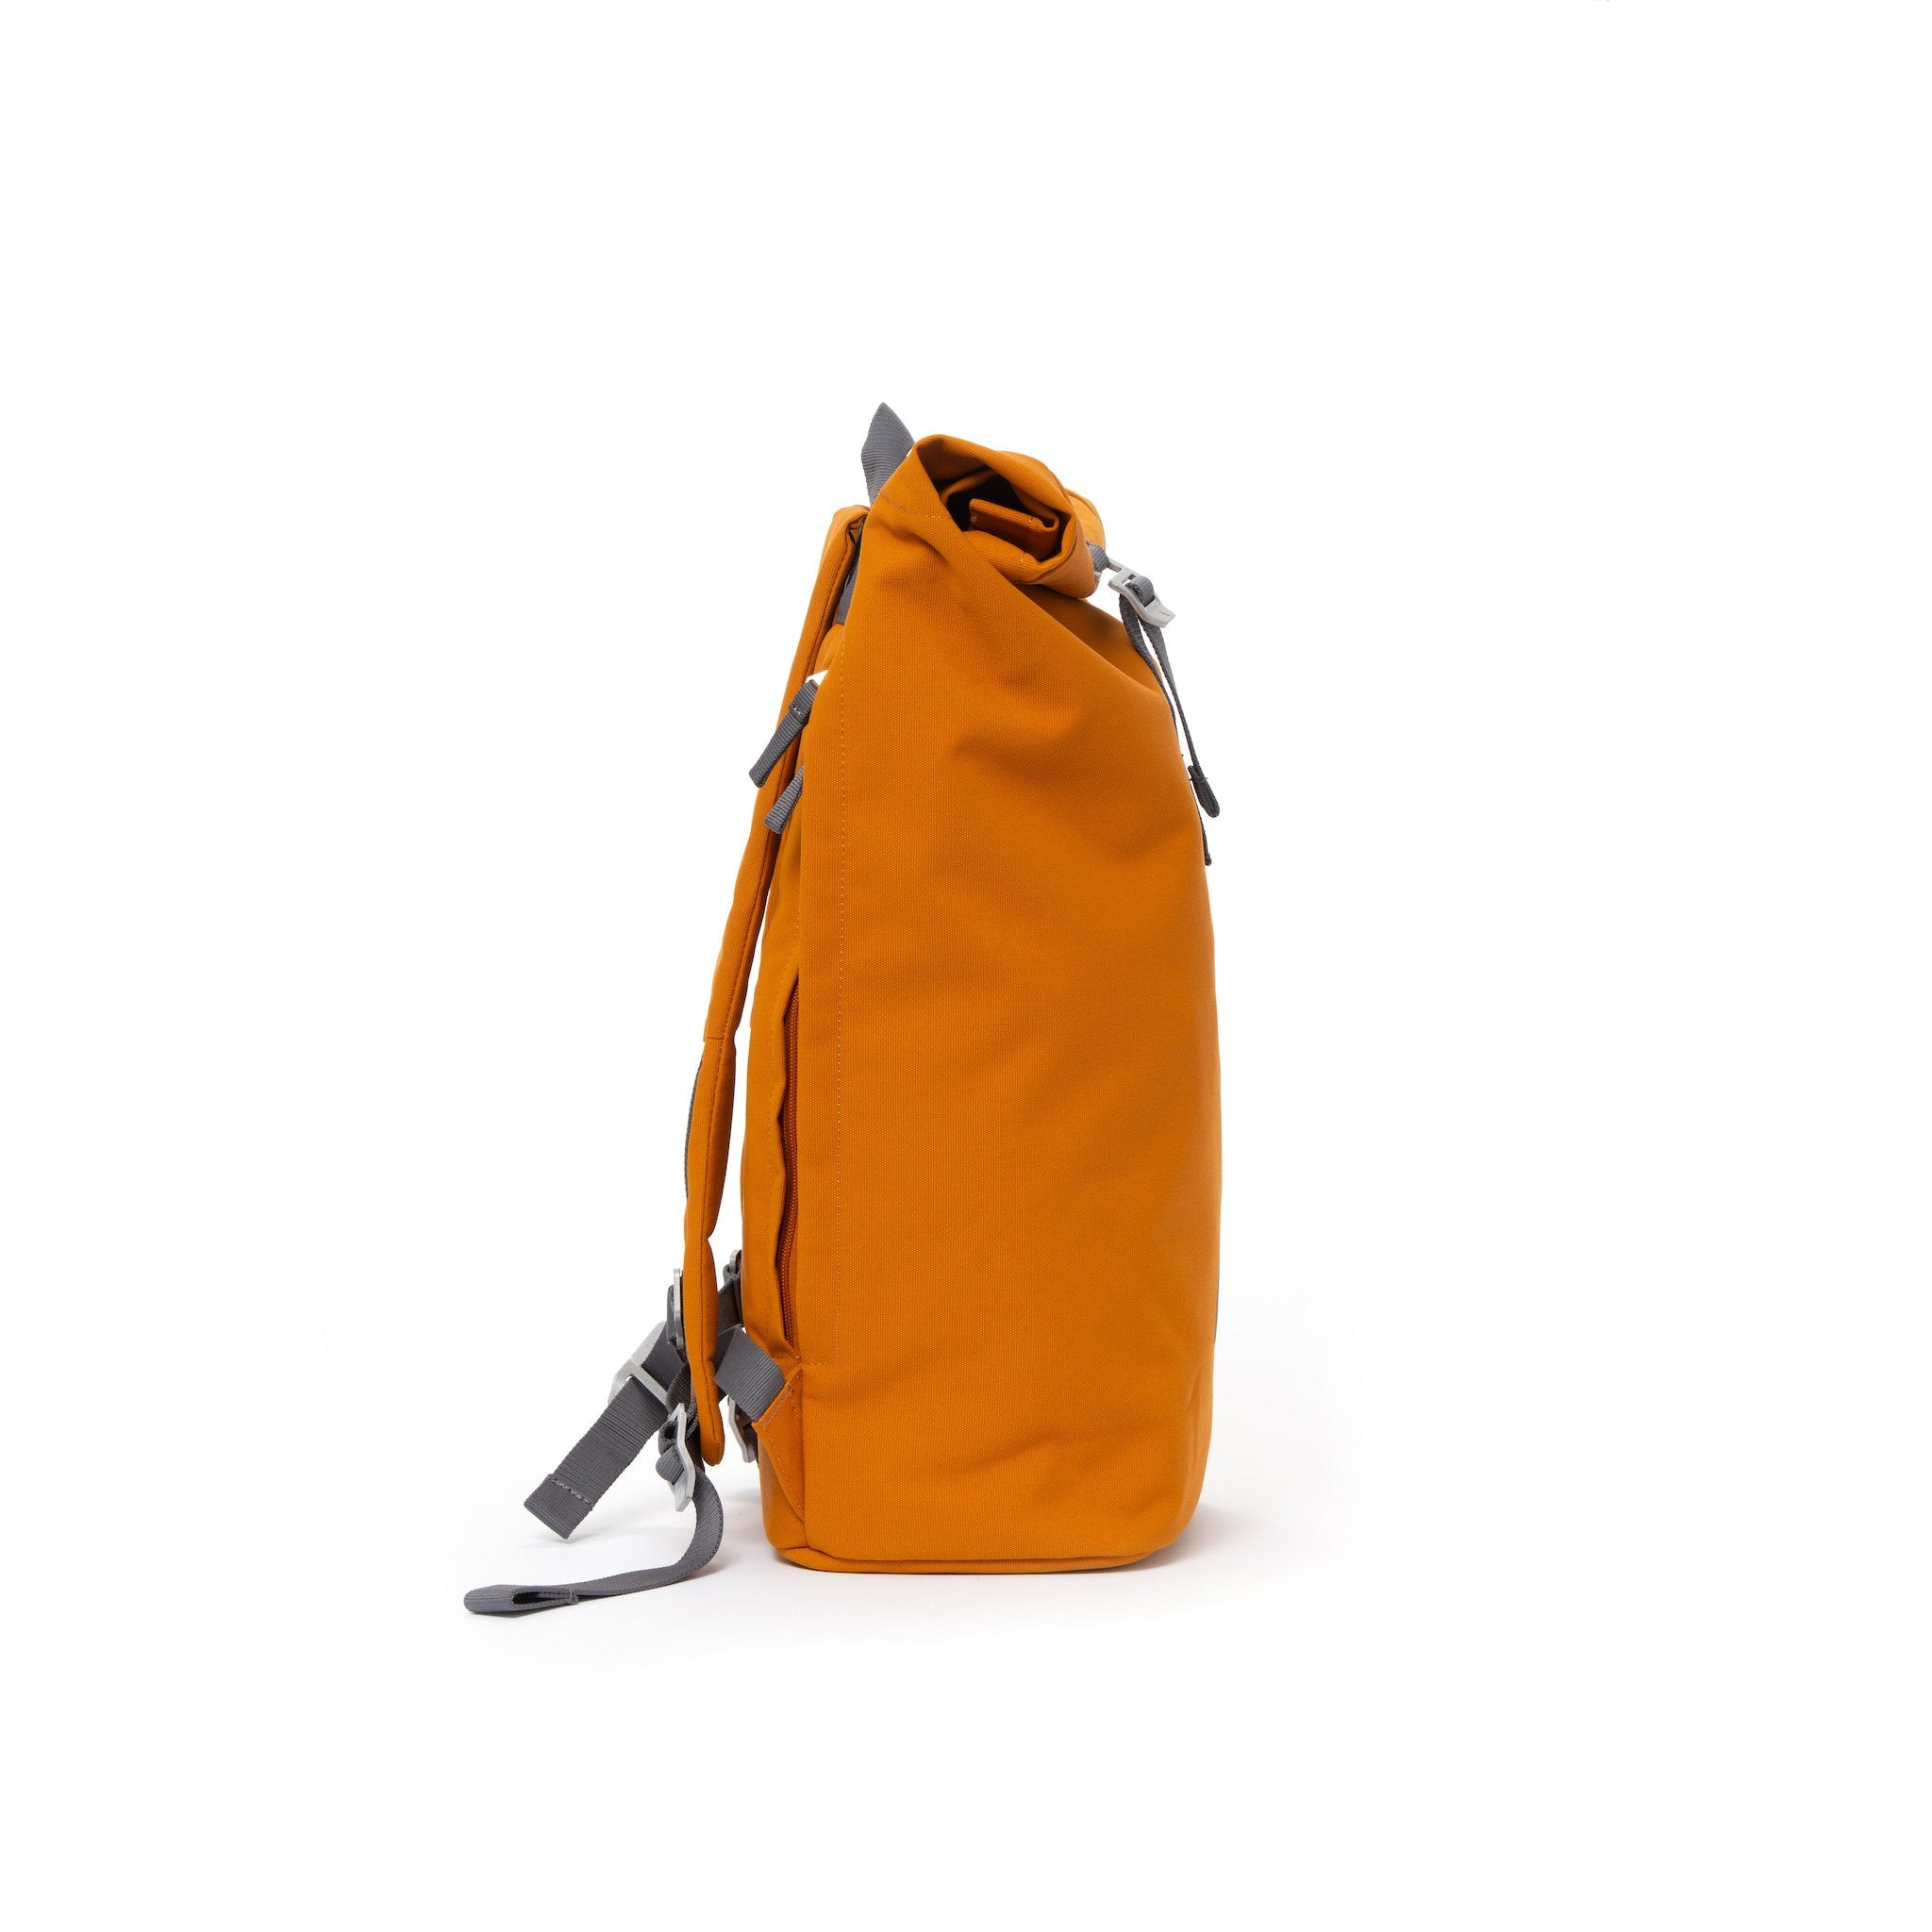 Orange waterproof canvas men's rolltop backpack.